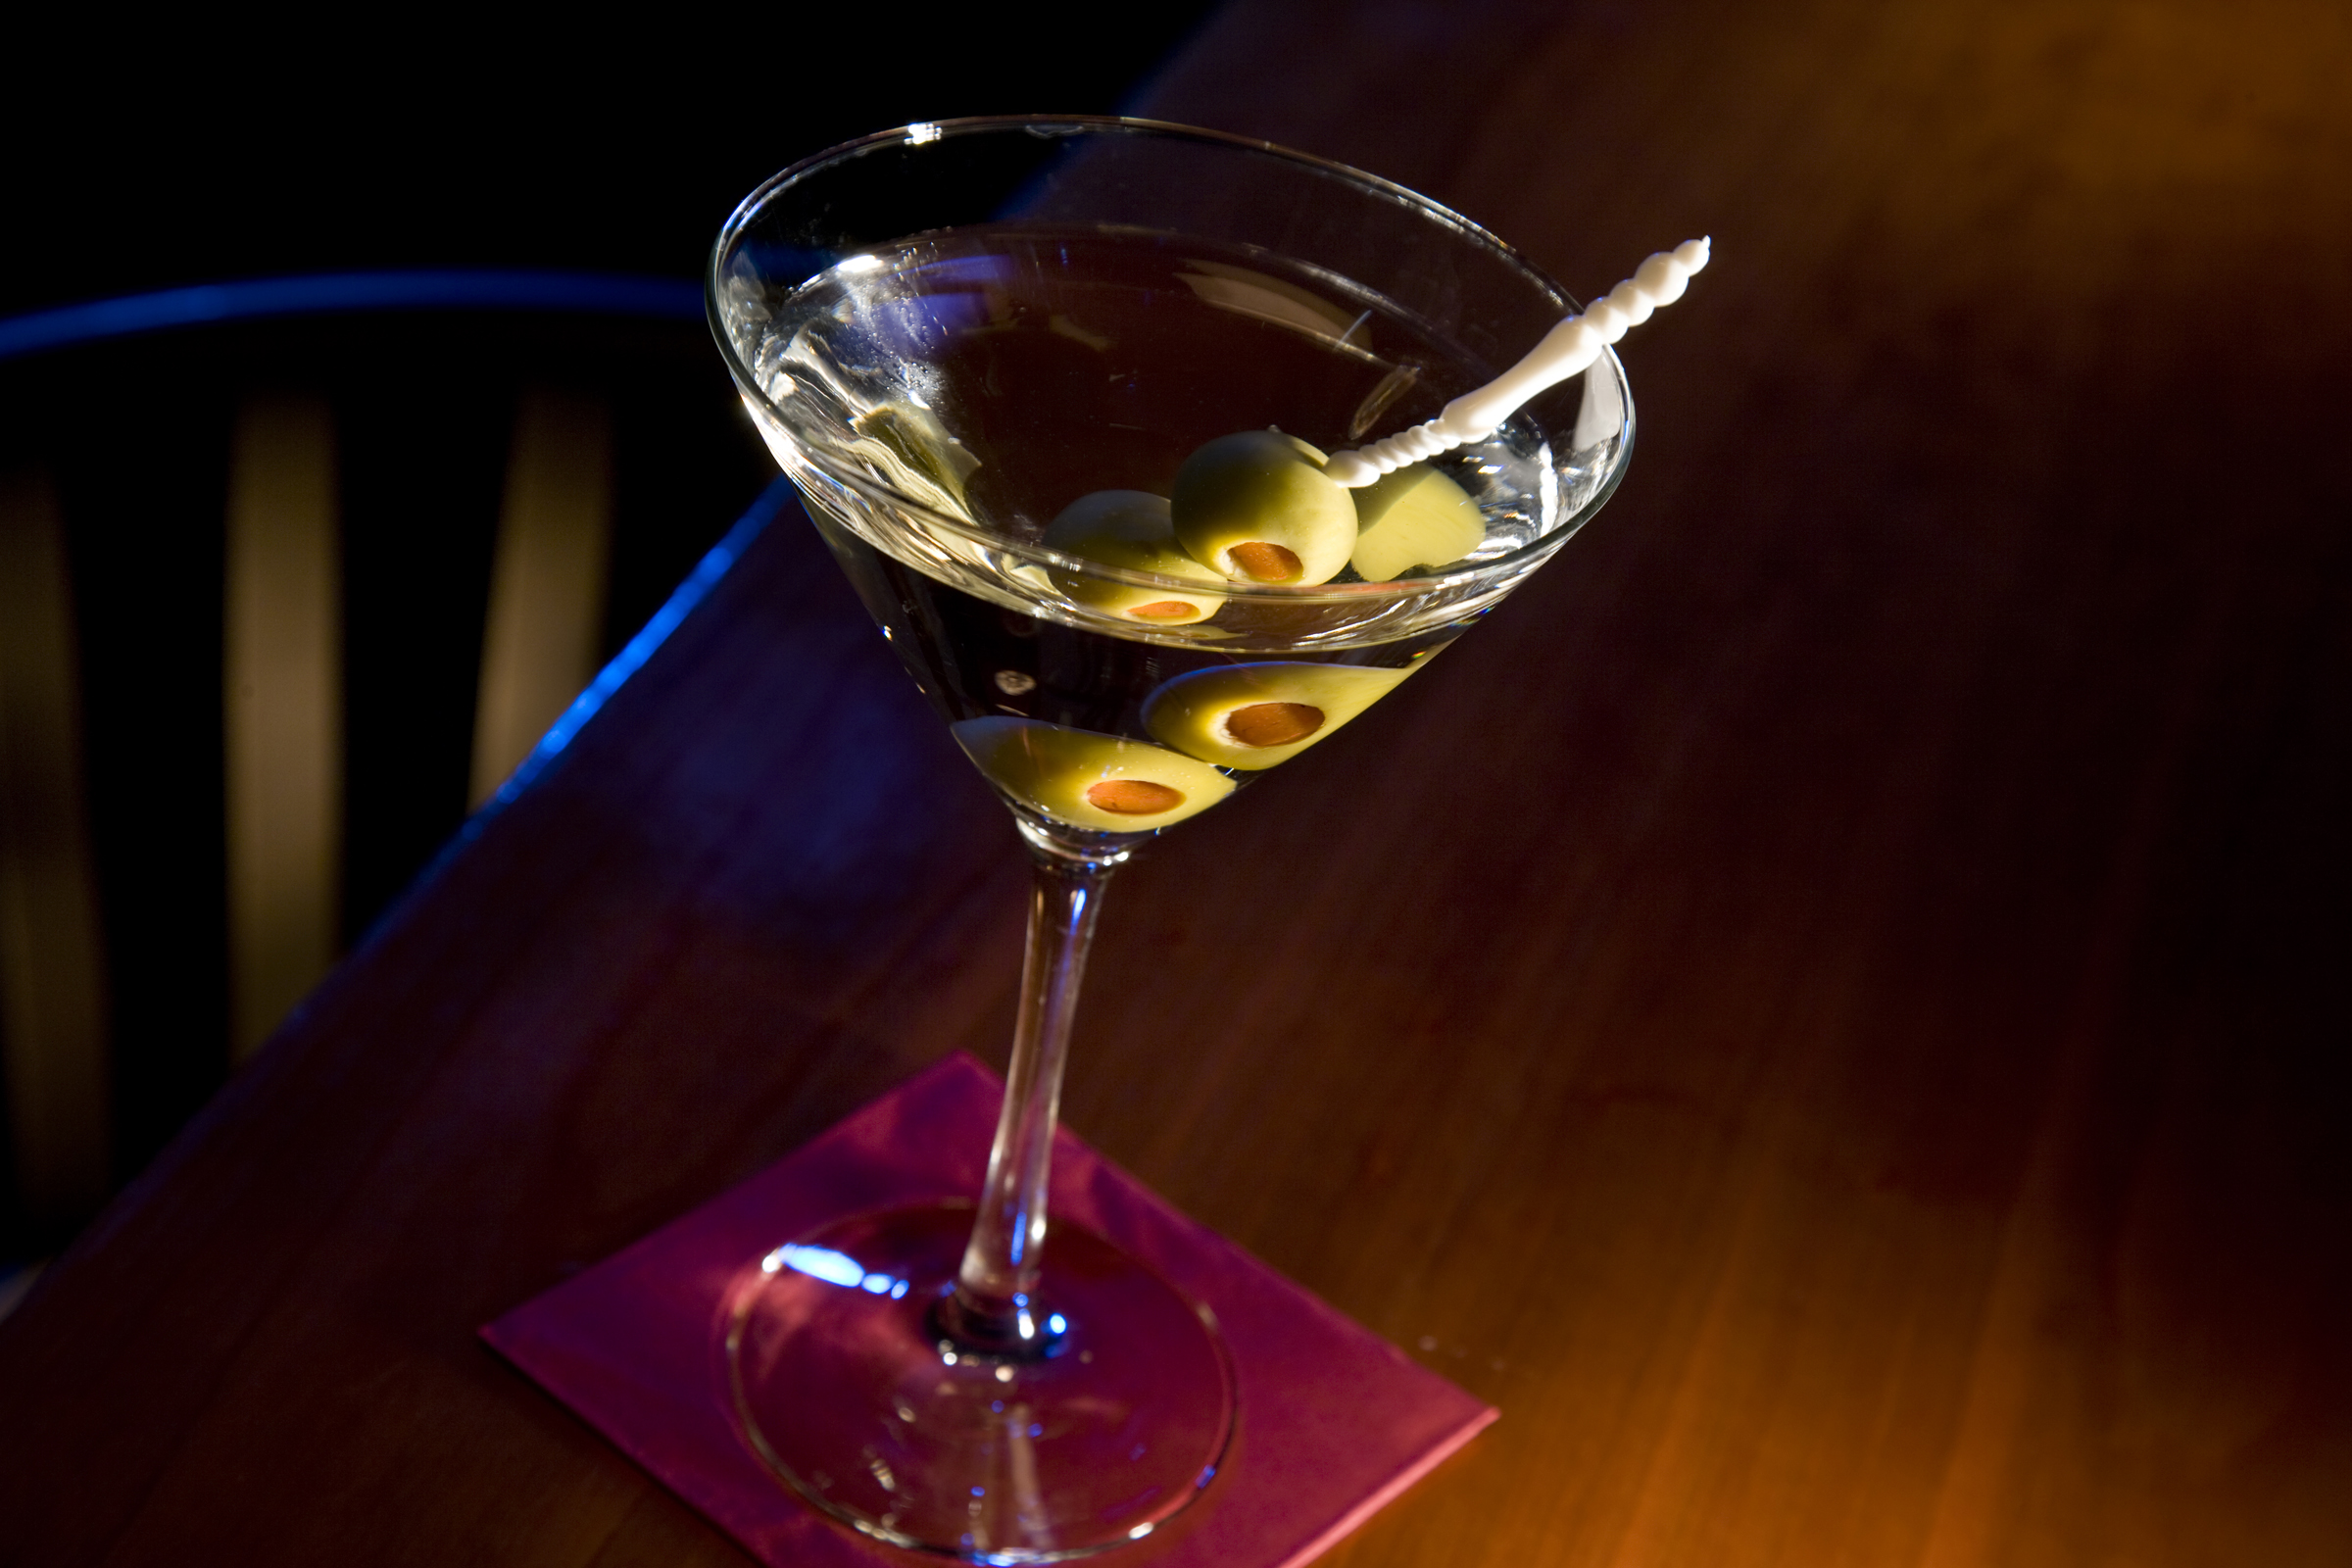 Fewer Americans Admit Driving Drunk Than in Past